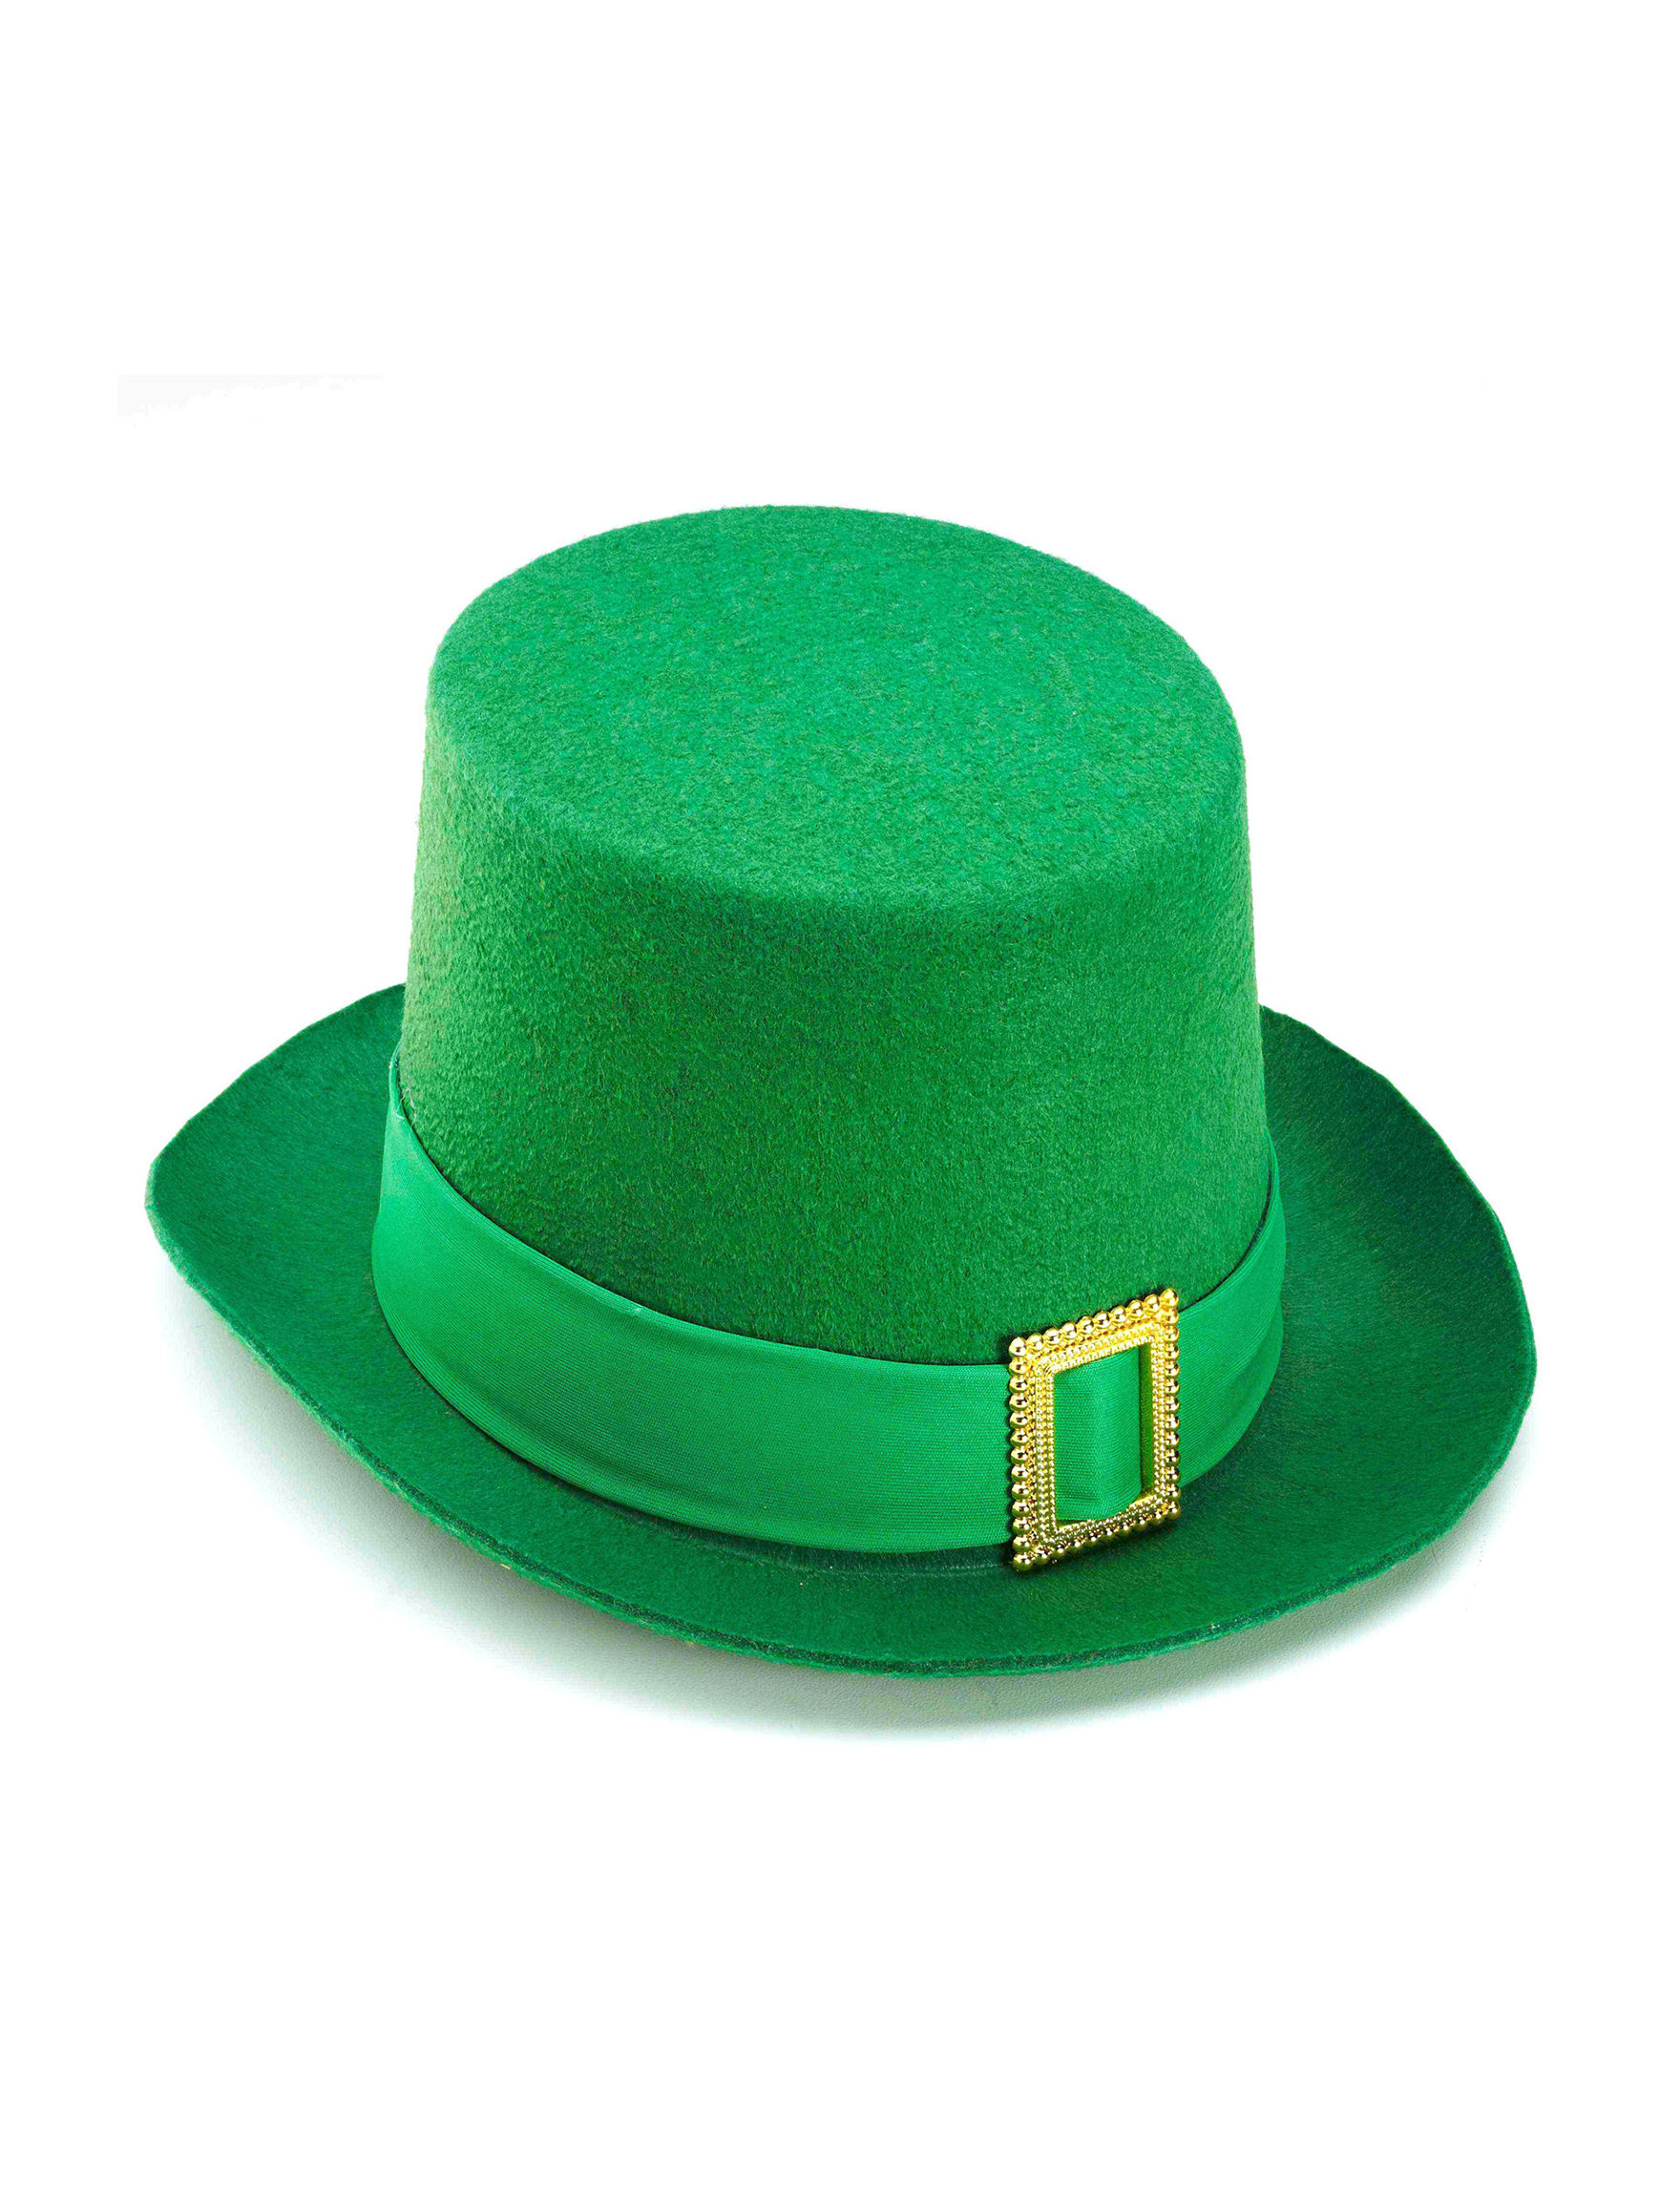 St. Patrick's Day Men's Costumes